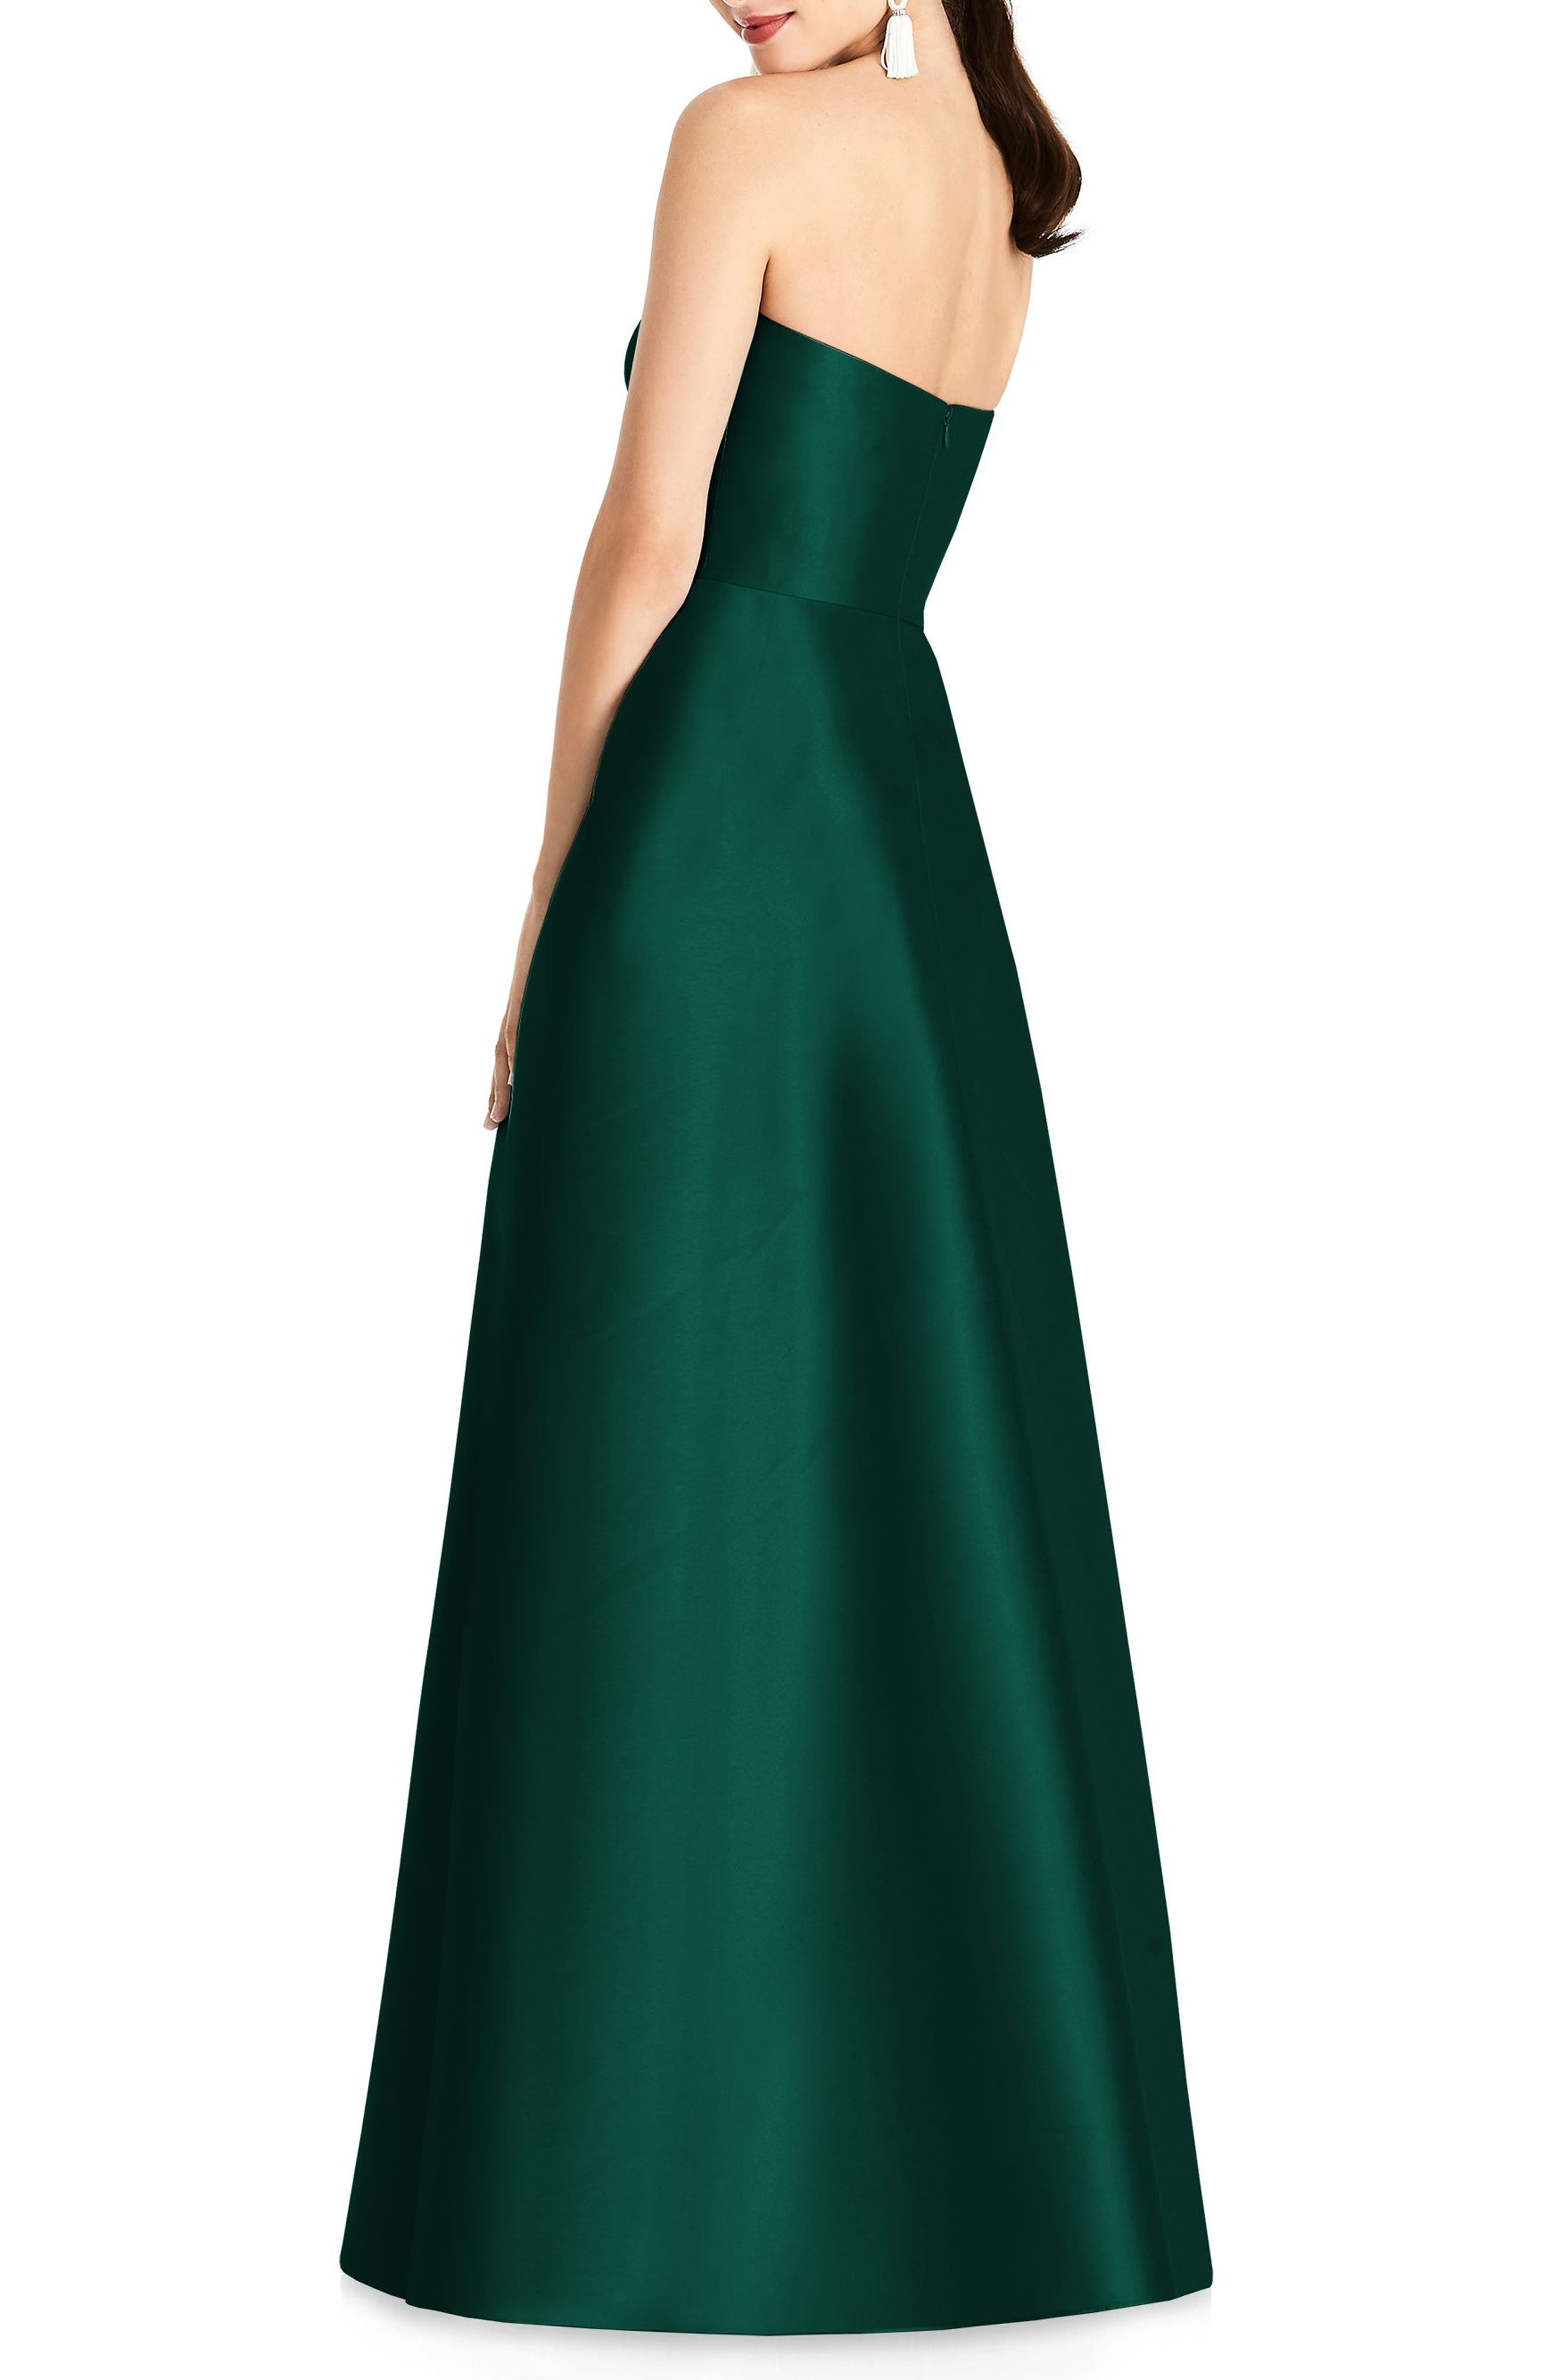 ALFRED SUNG, Strapless Sateen Gown, Alternate thumbnail 2, color, HUNTER